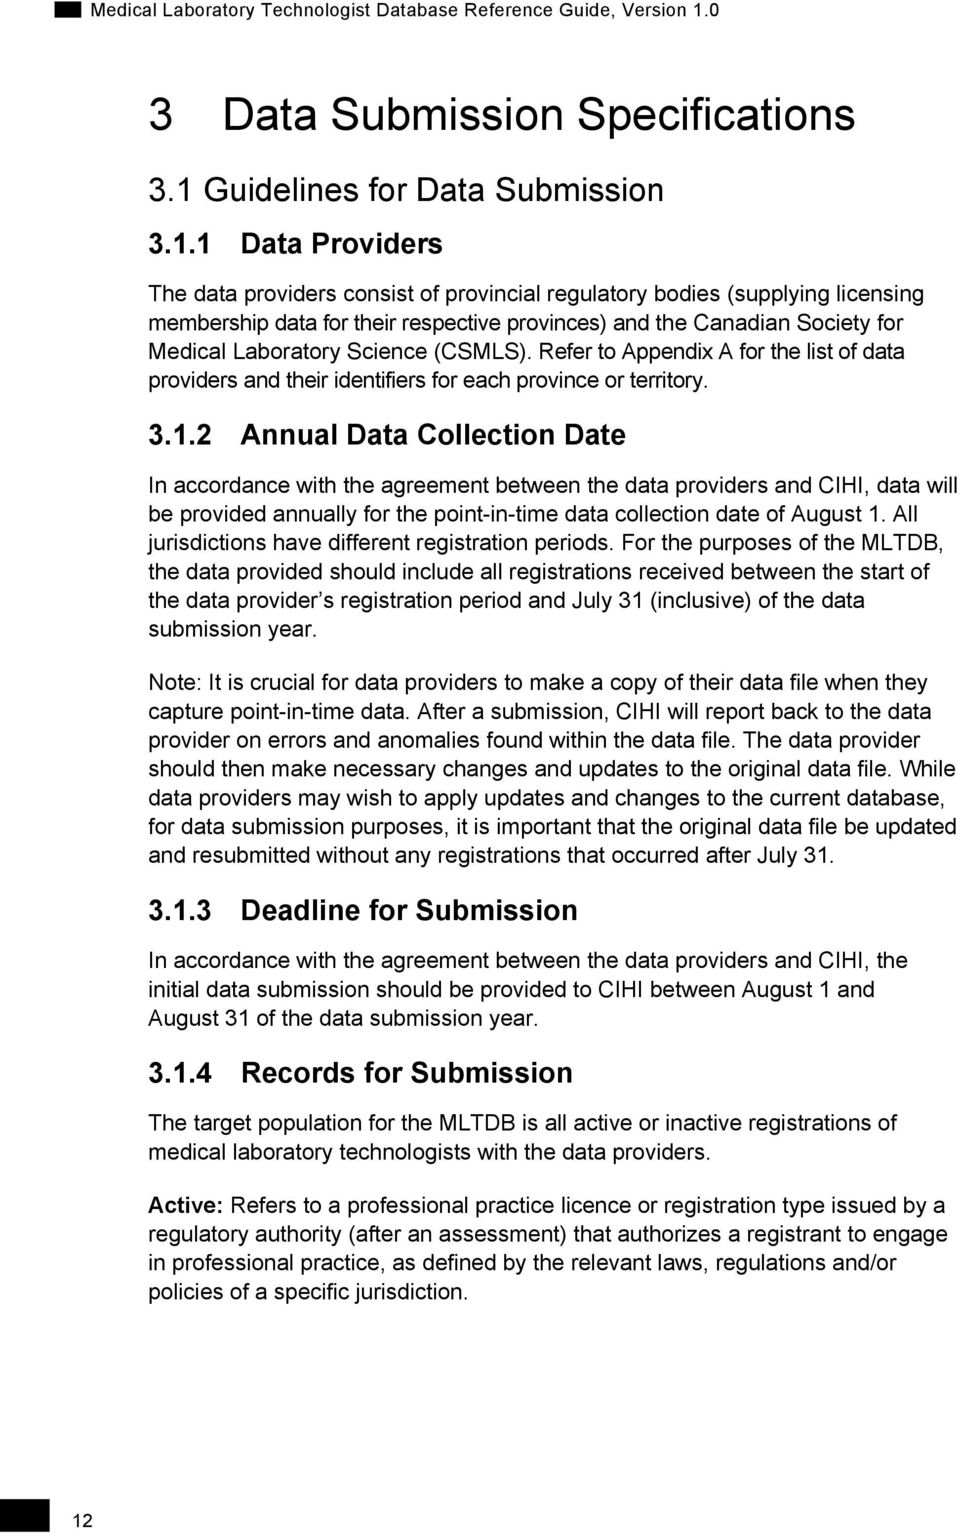 1 Data Providers The data providers consist of provincial regulatory bodies (supplying licensing membership data for their respective provinces) and the Canadian Society for Medical Laboratory